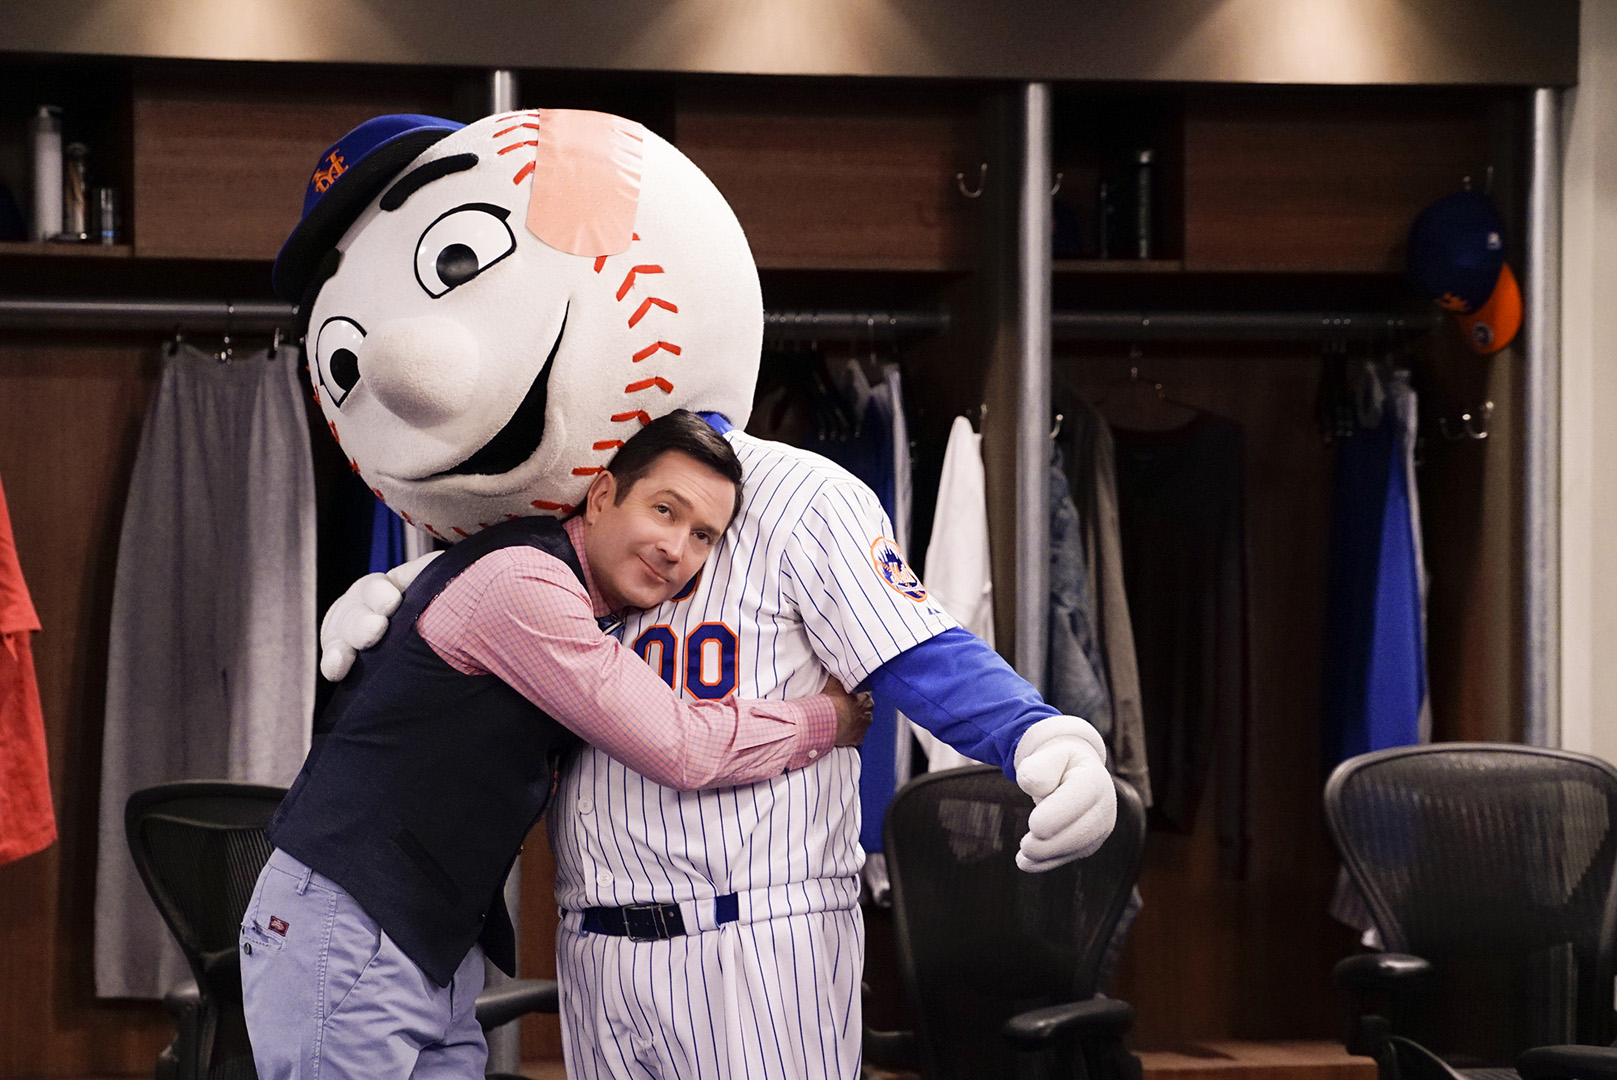 Felix gives Mr. Met a big hug.